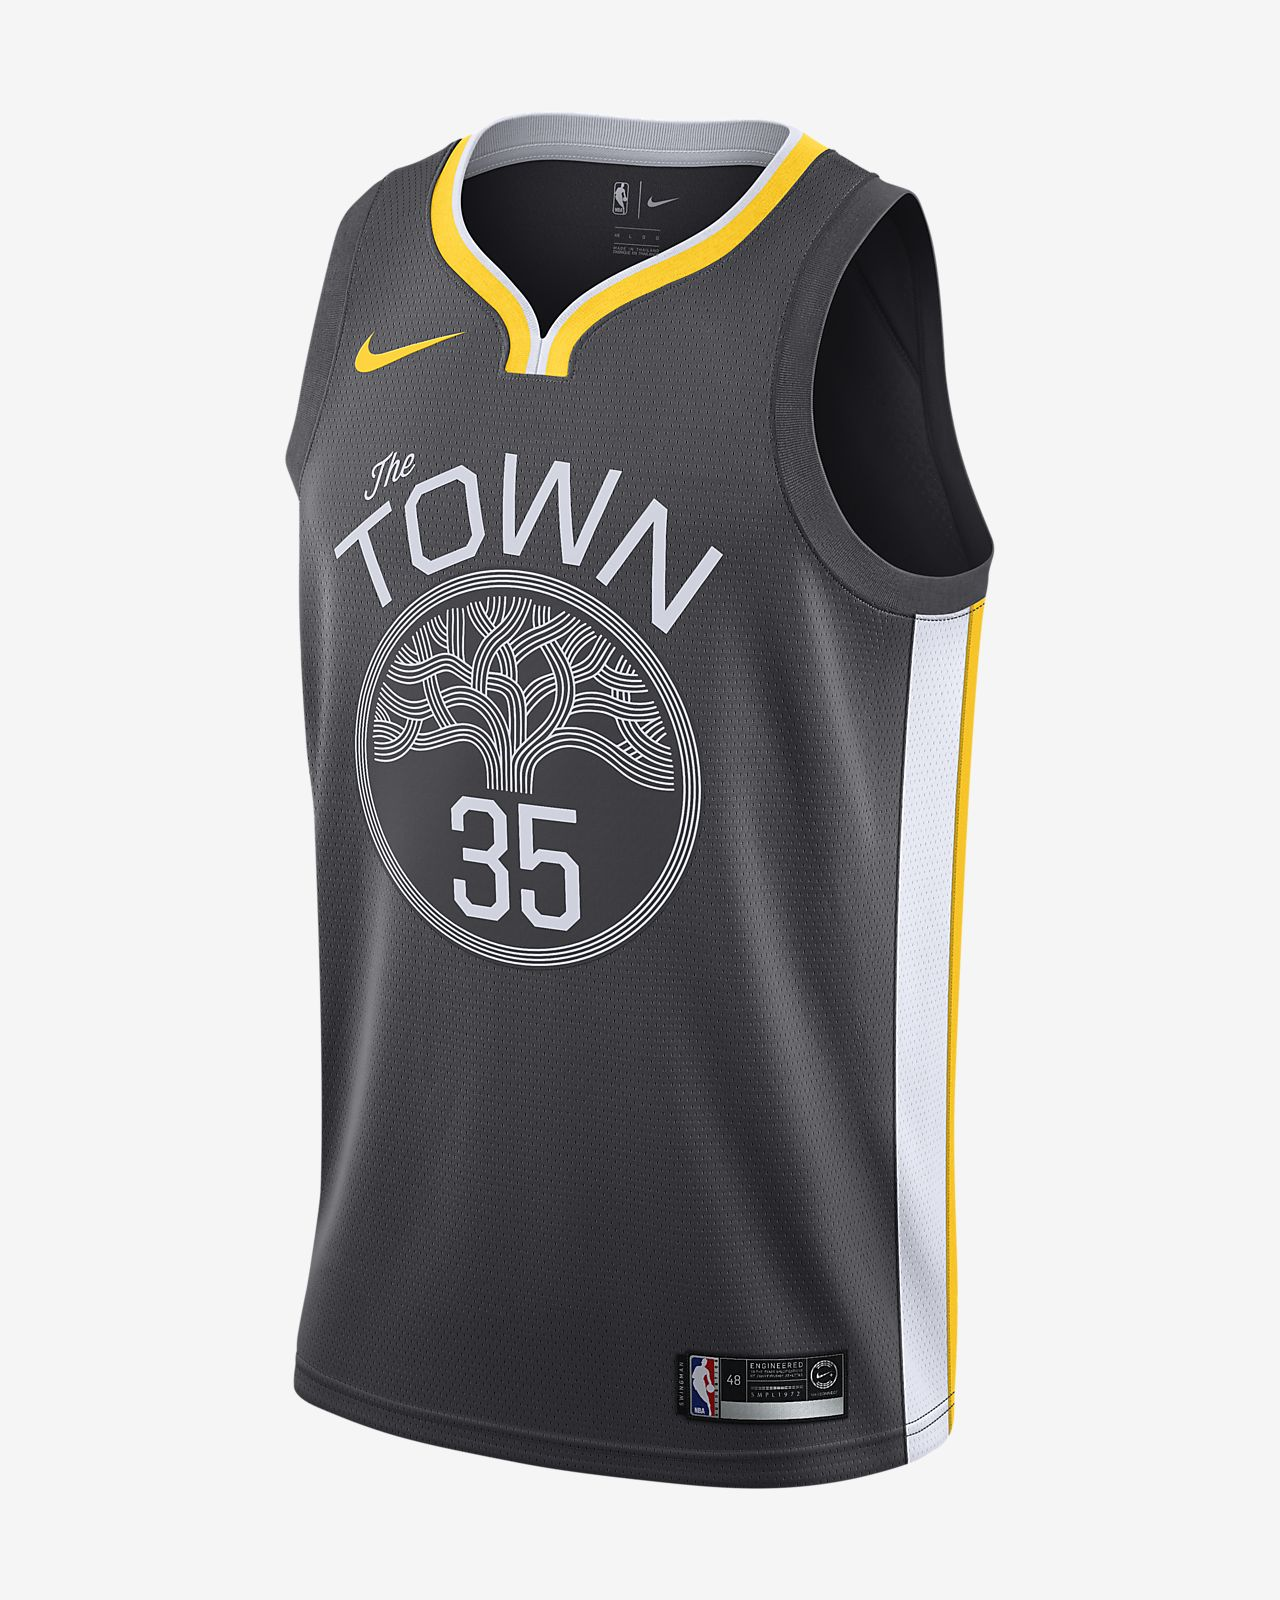 e21d68192d6 Men s Nike NBA Connected Jersey. Kevin Durant Statement Edition Swingman (Golden  State Warriors)